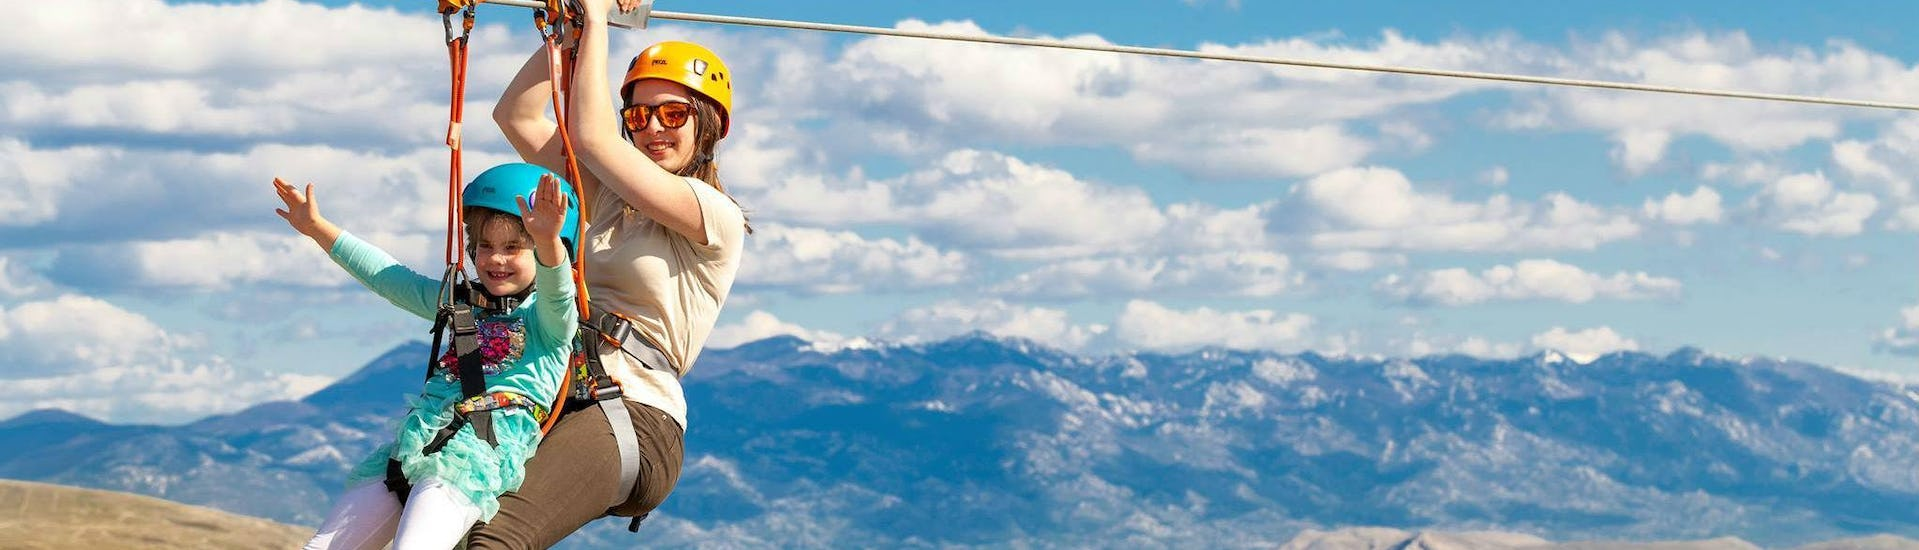 """A small happy girl is gliding on a zipline with a qualified guide from Edison Zipline Krk during the zipline tour """"Explore Krk"""" on the Island of Krk."""